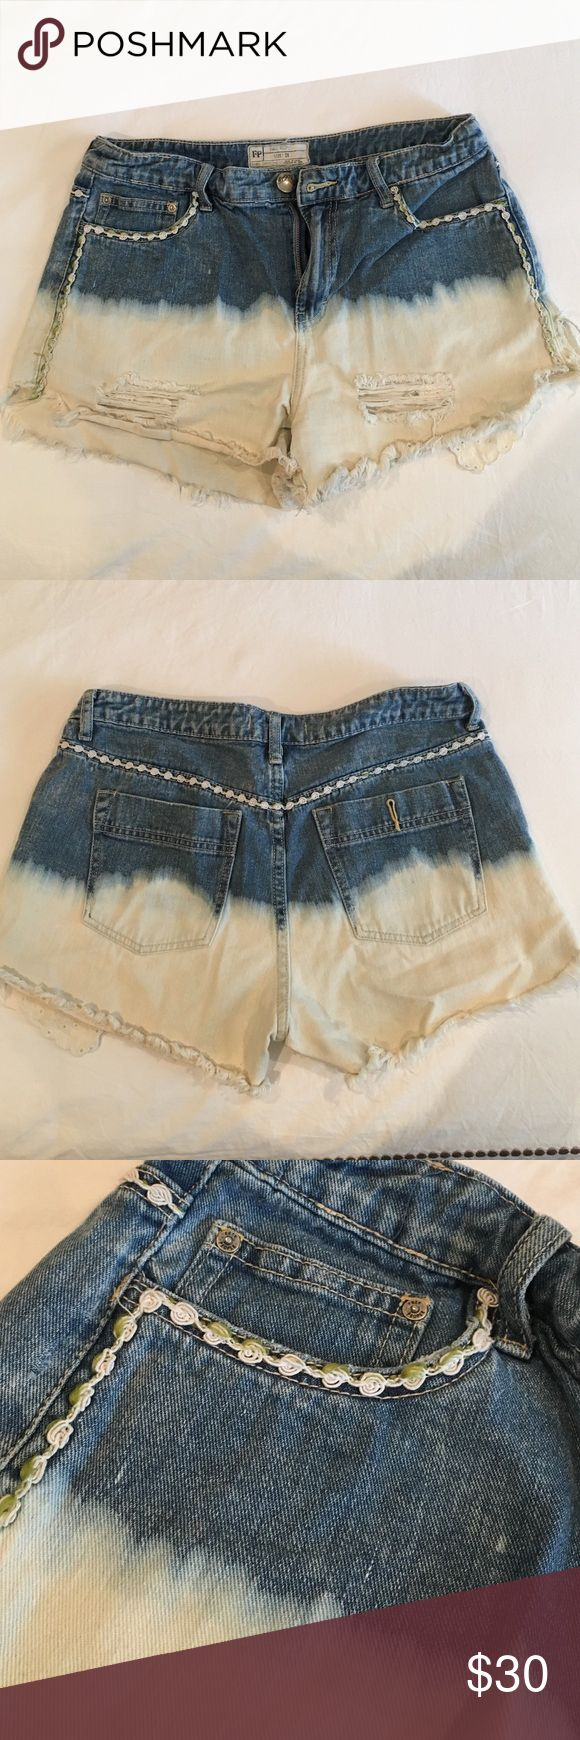 Free People Dip-dye shorts Medium Blue jean with white dip-dye! Floral embroidery along the seam and pocket as well. Free People Shorts Jean Shorts